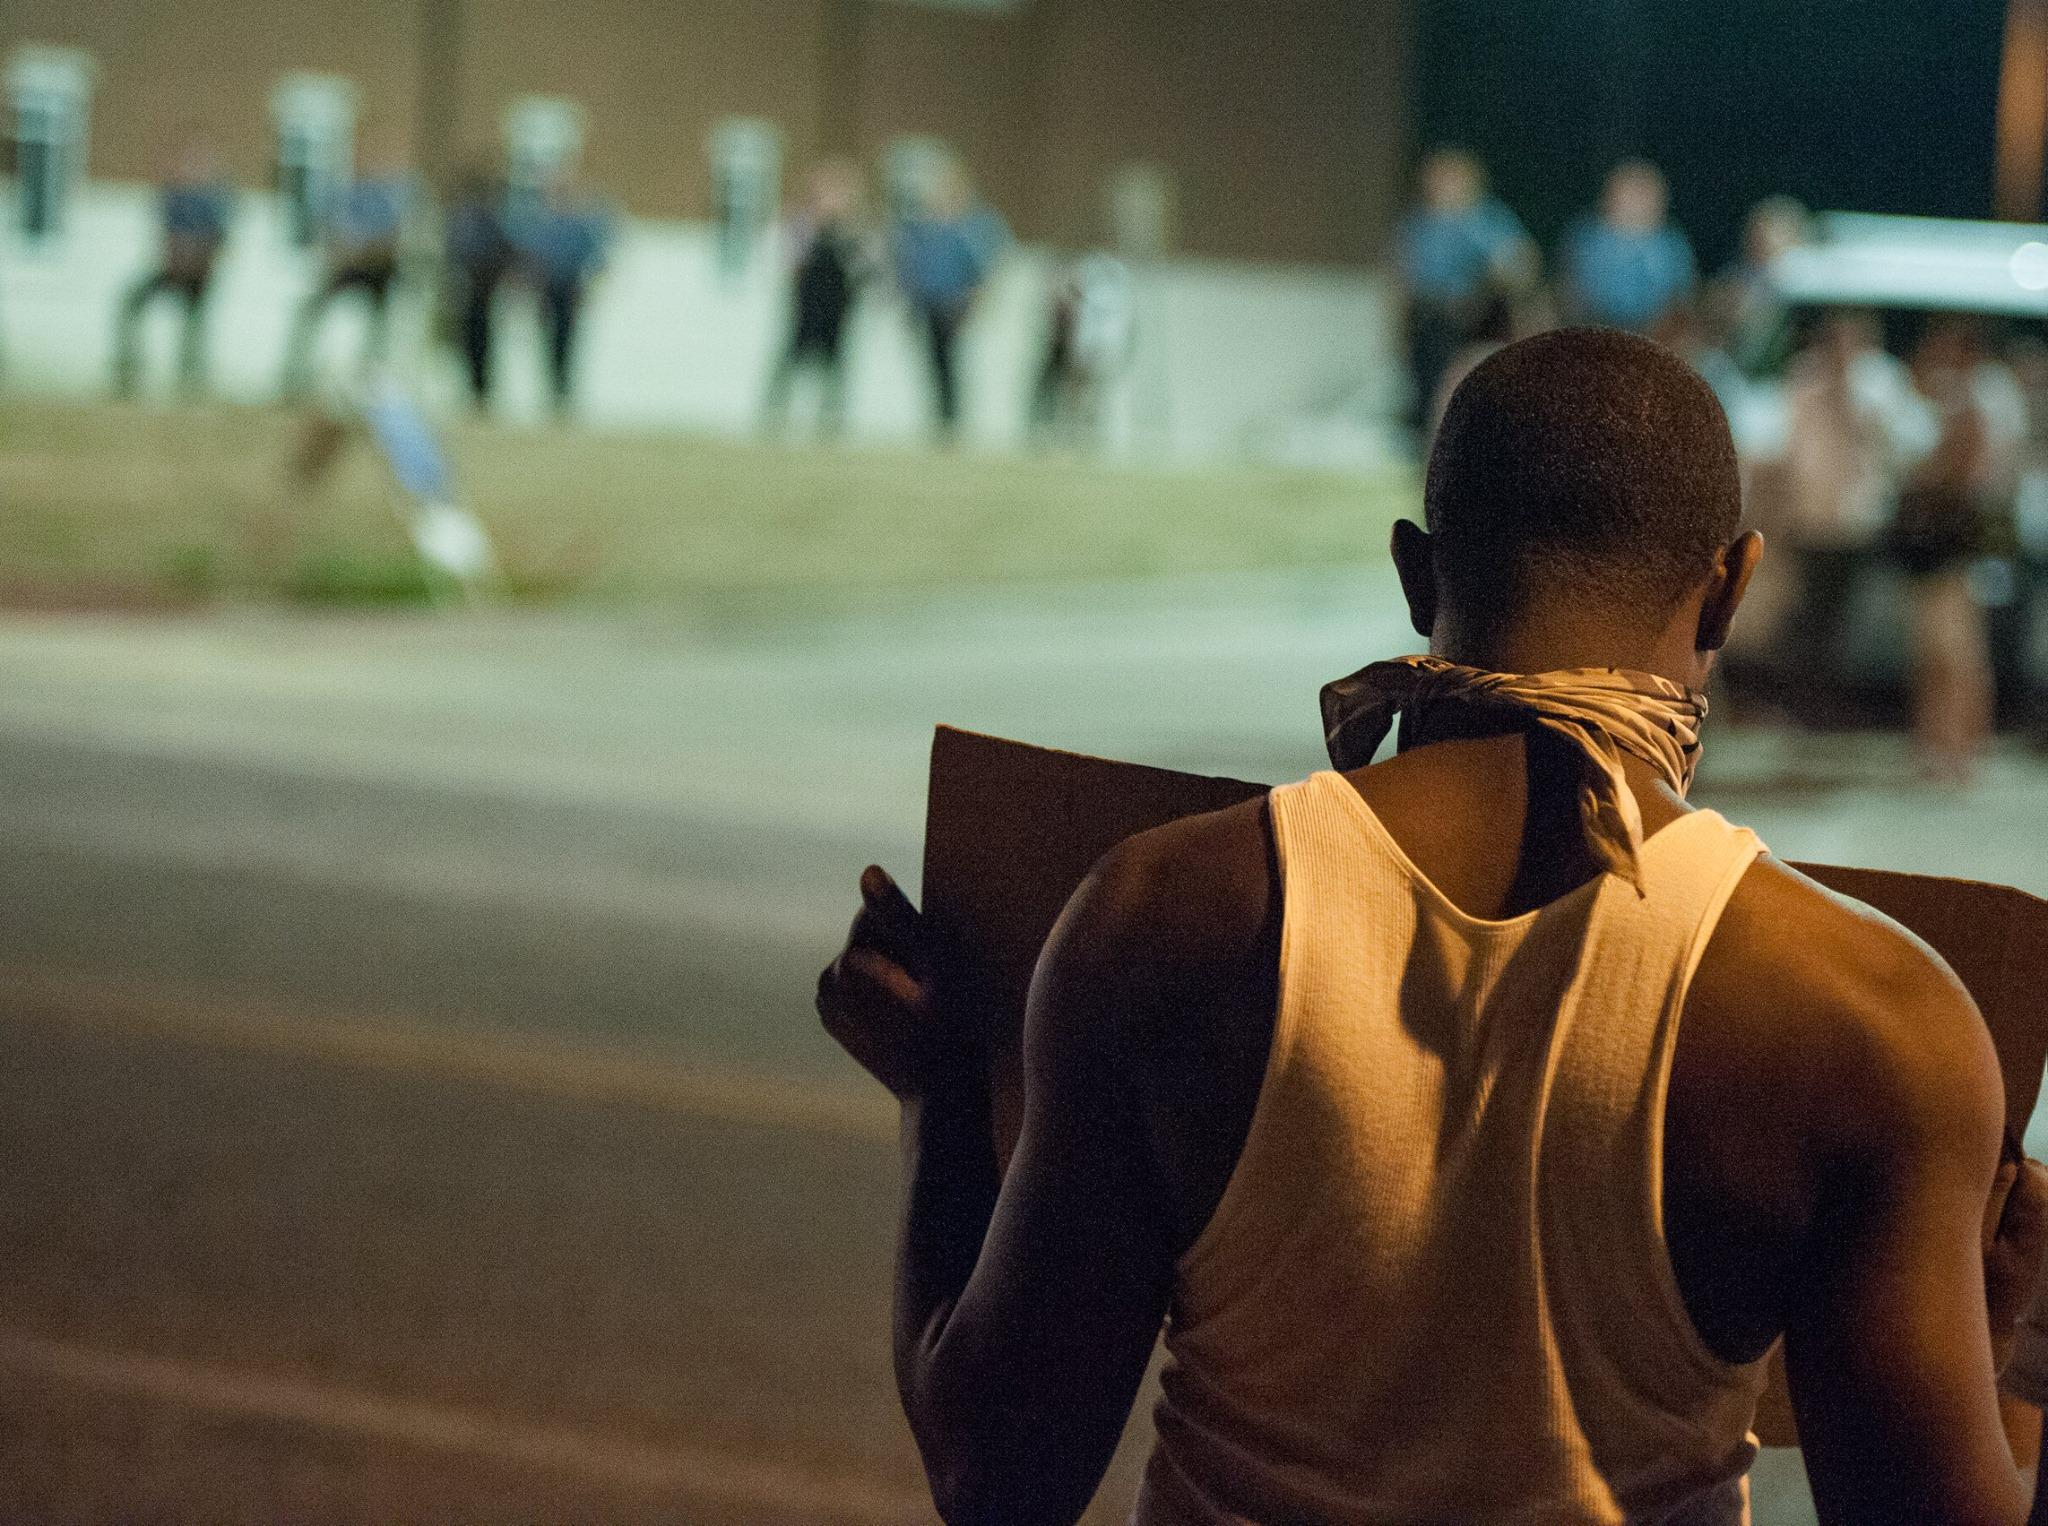 Ferguson Protester holding a sign, police in background.